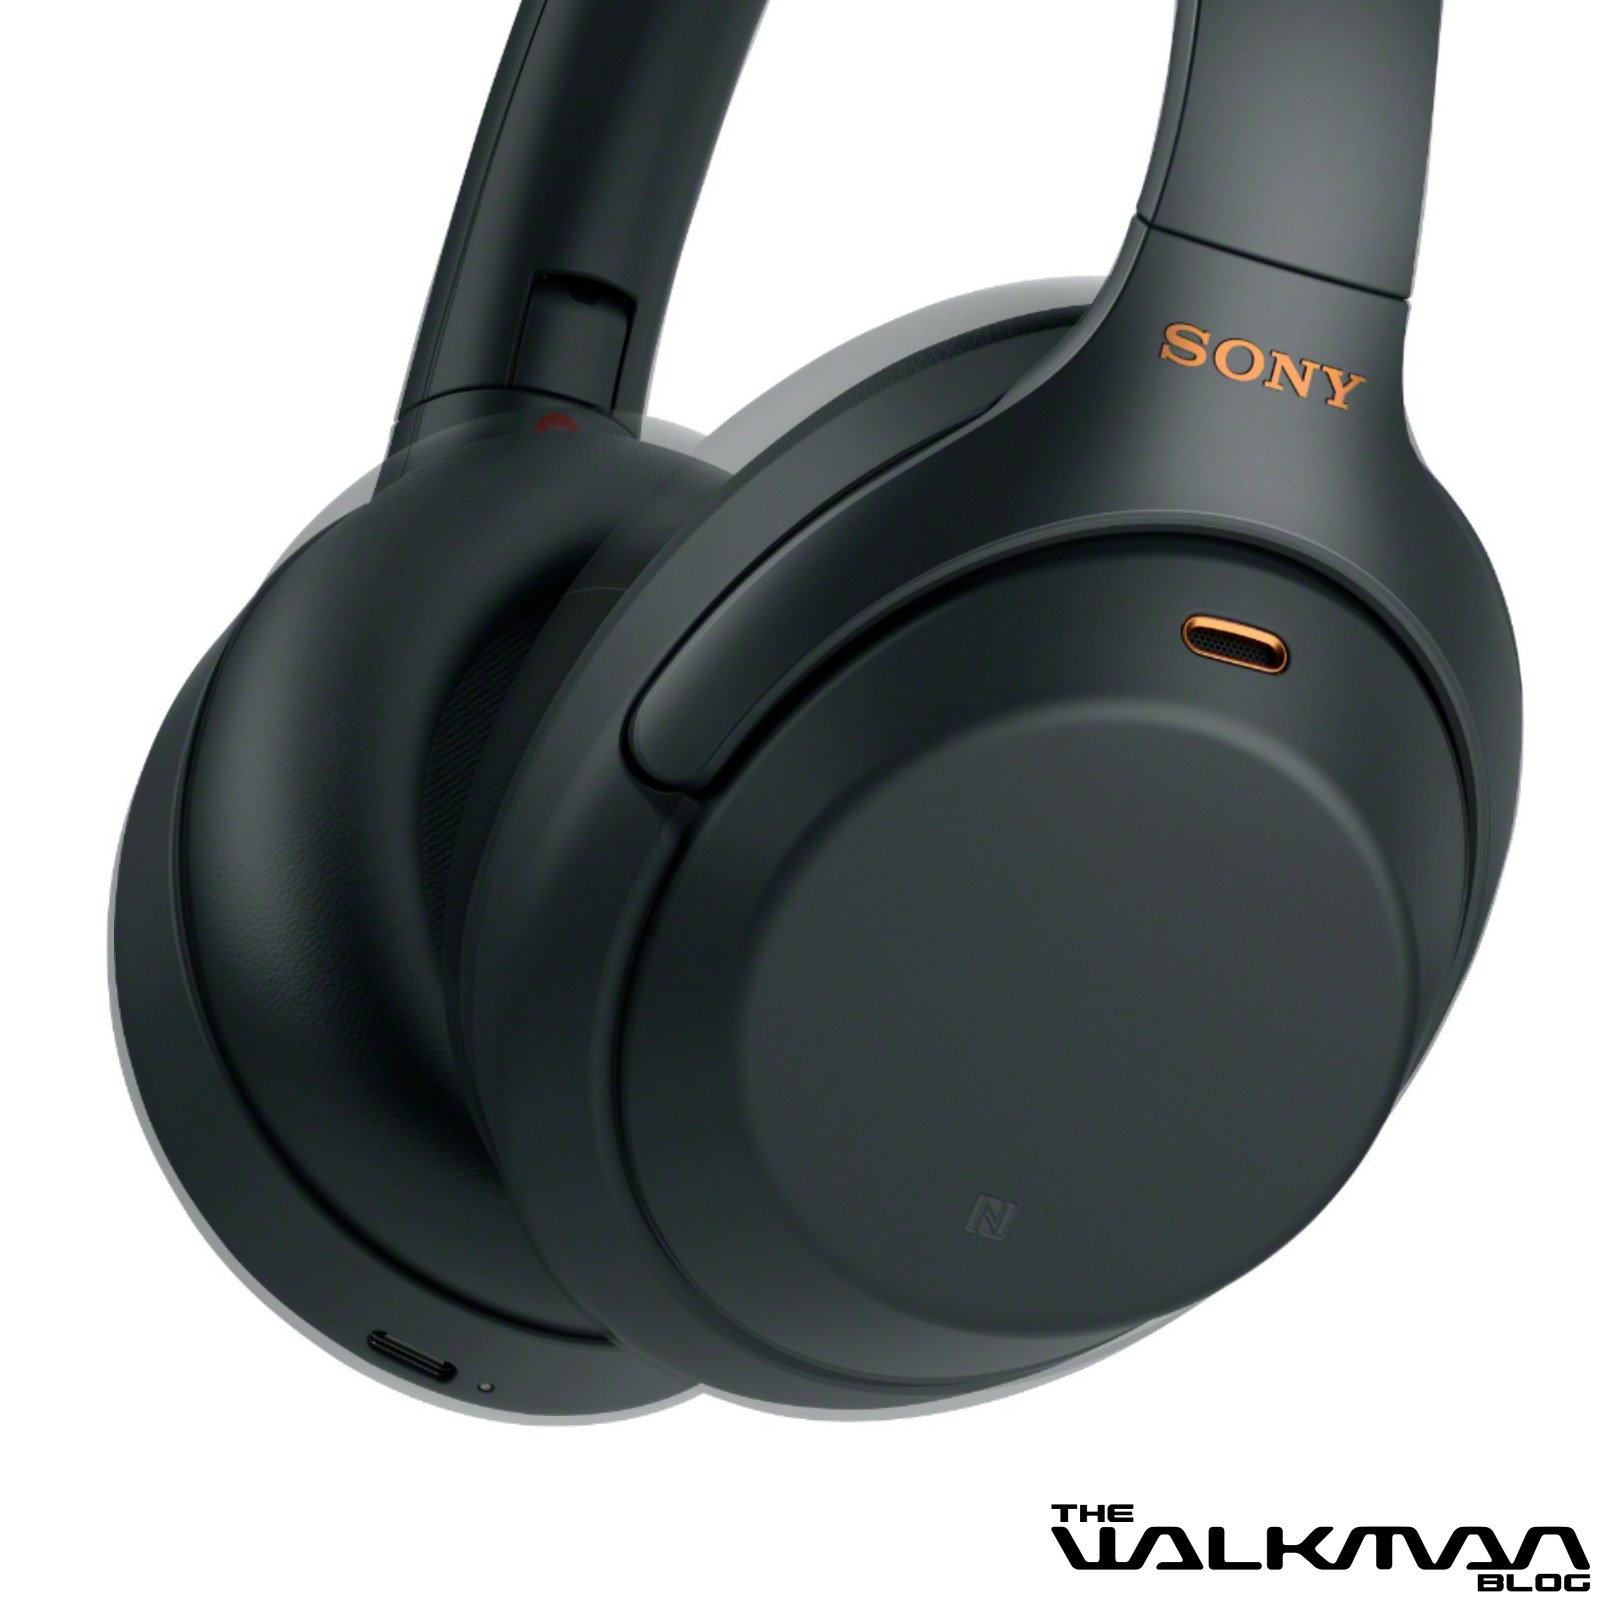 Sony WH-1000XM4 Leaked by Best Buy (update 4) - The